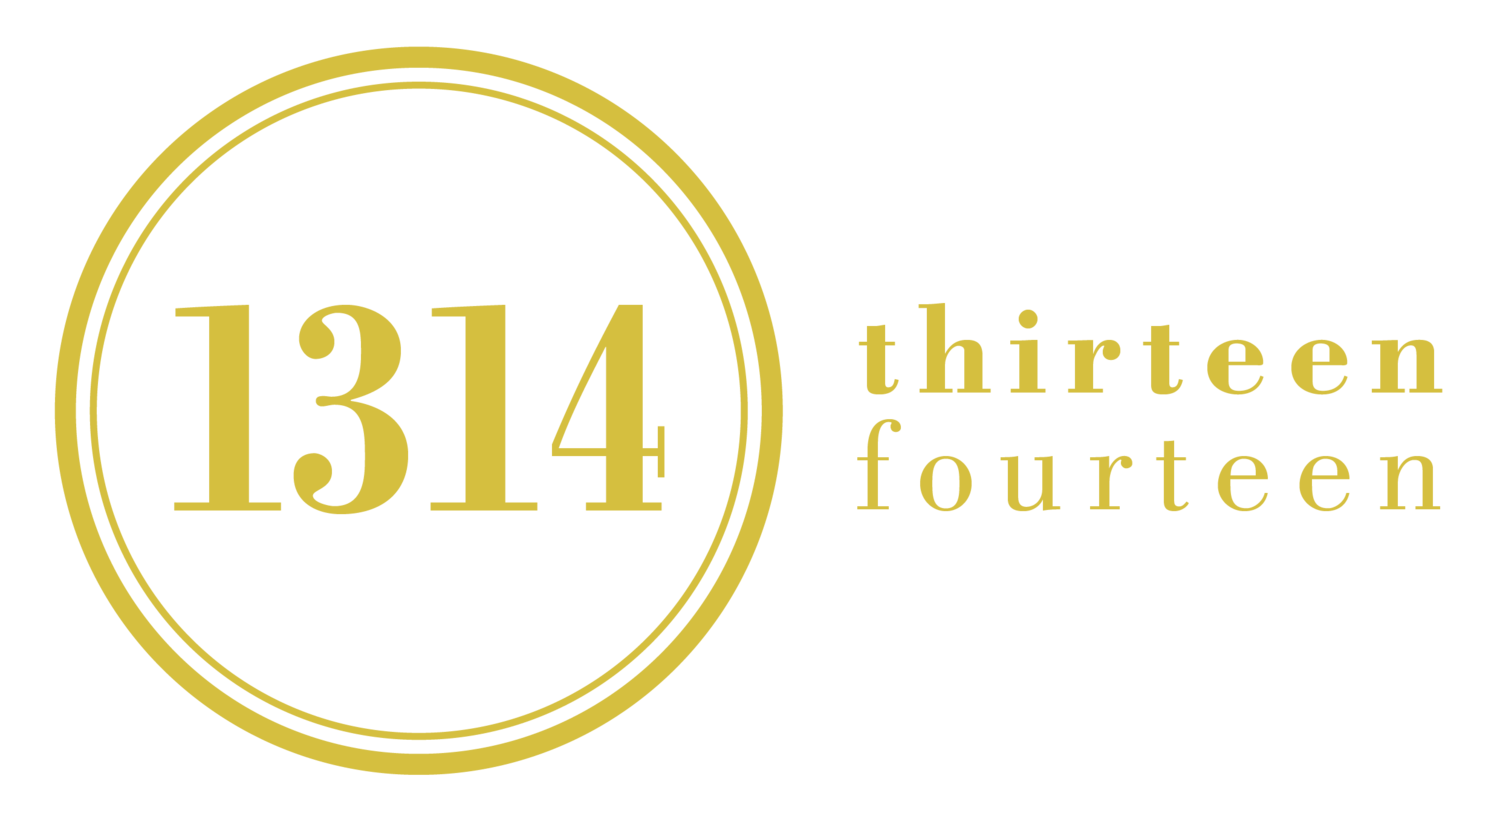 1314 thirteen fourteen